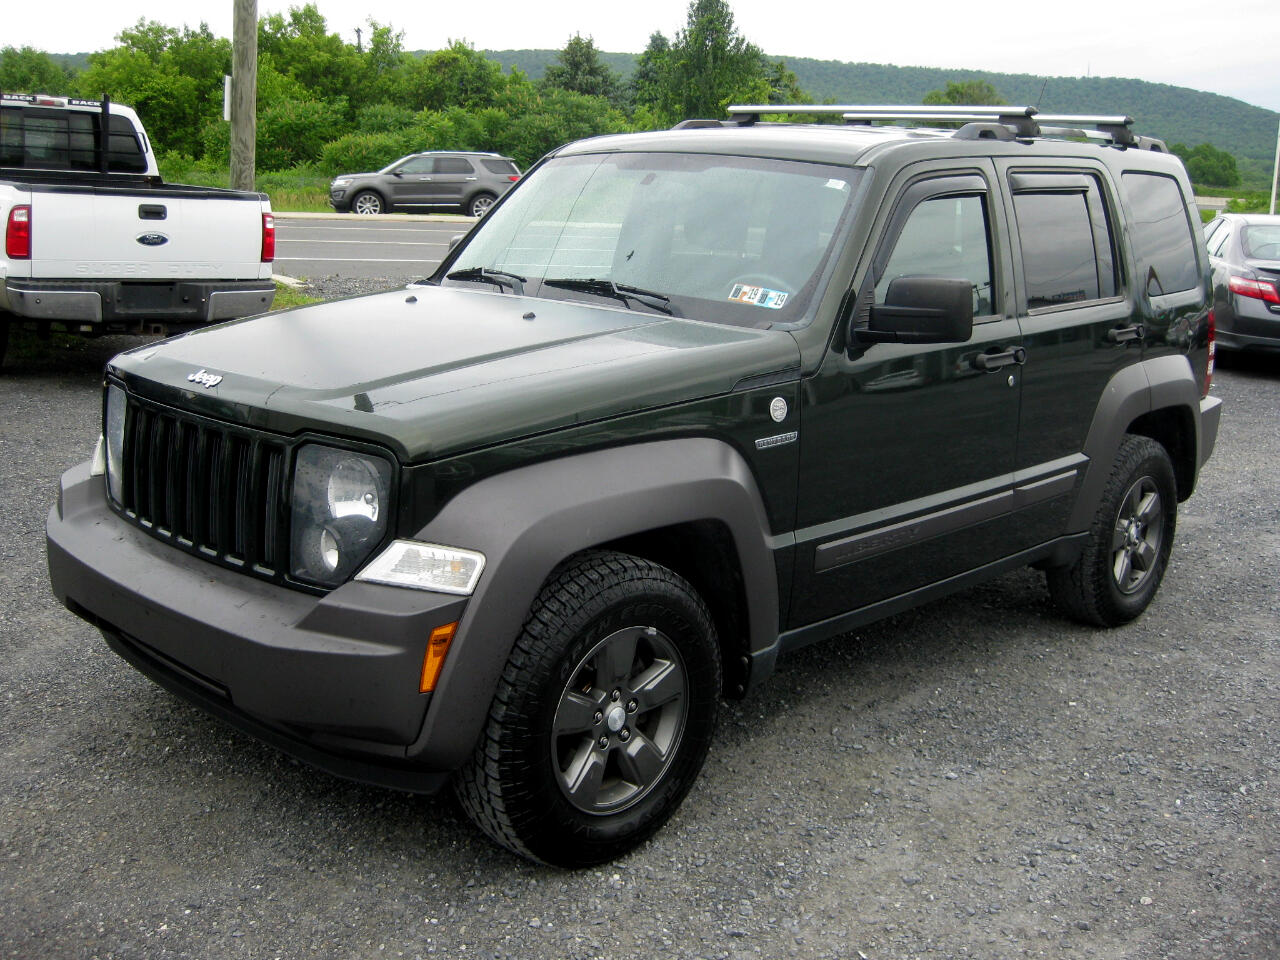 2011 Jeep Liberty 4WD 4dr Renegade